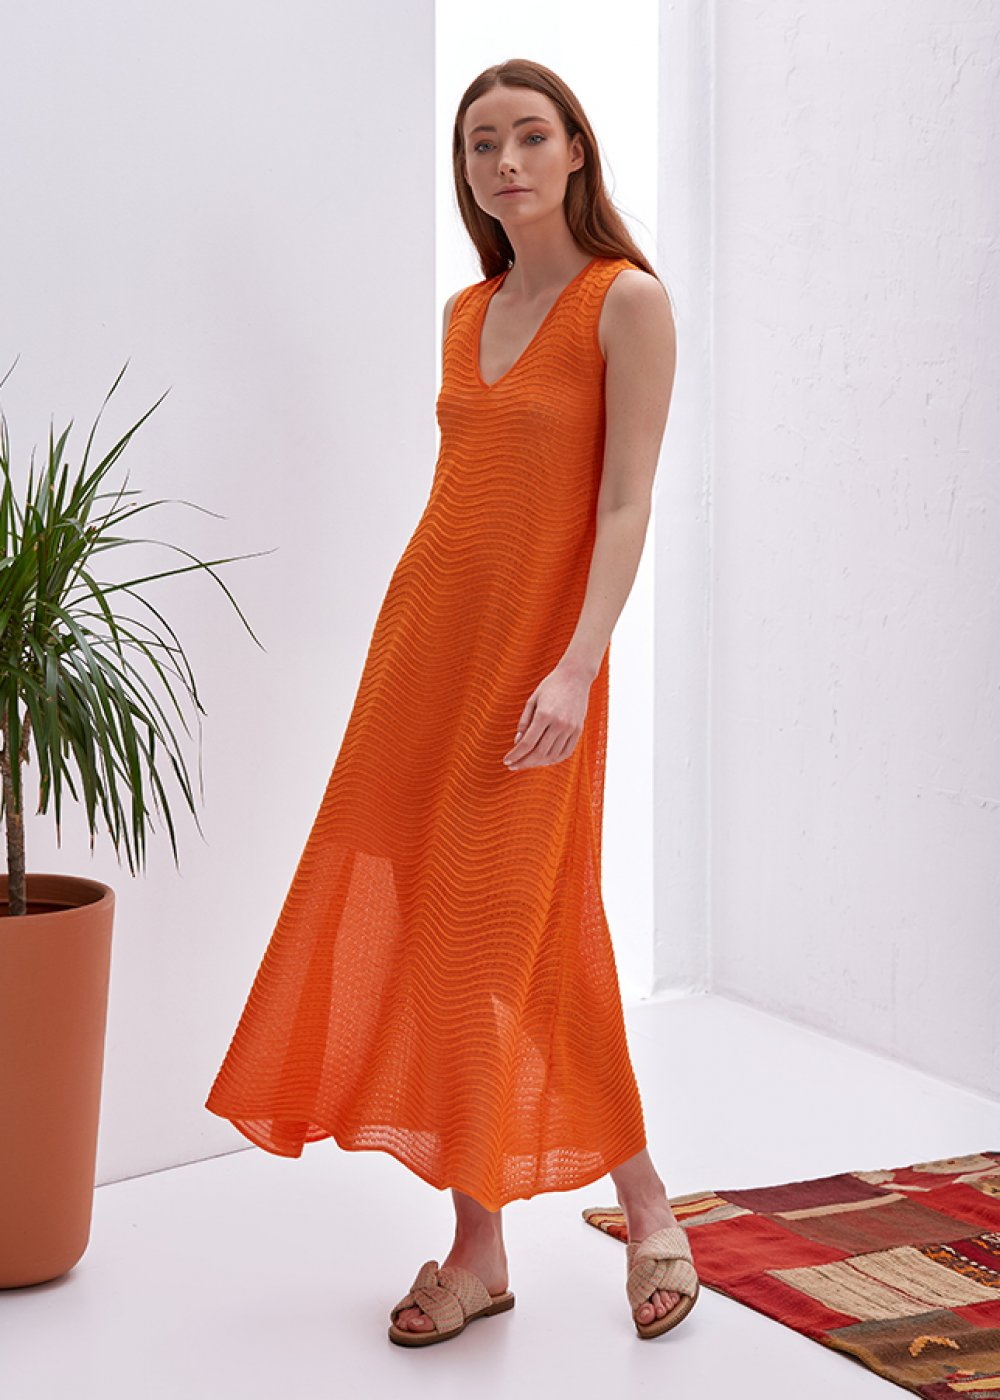 V Neck Sleeveless Orange Knit Dress